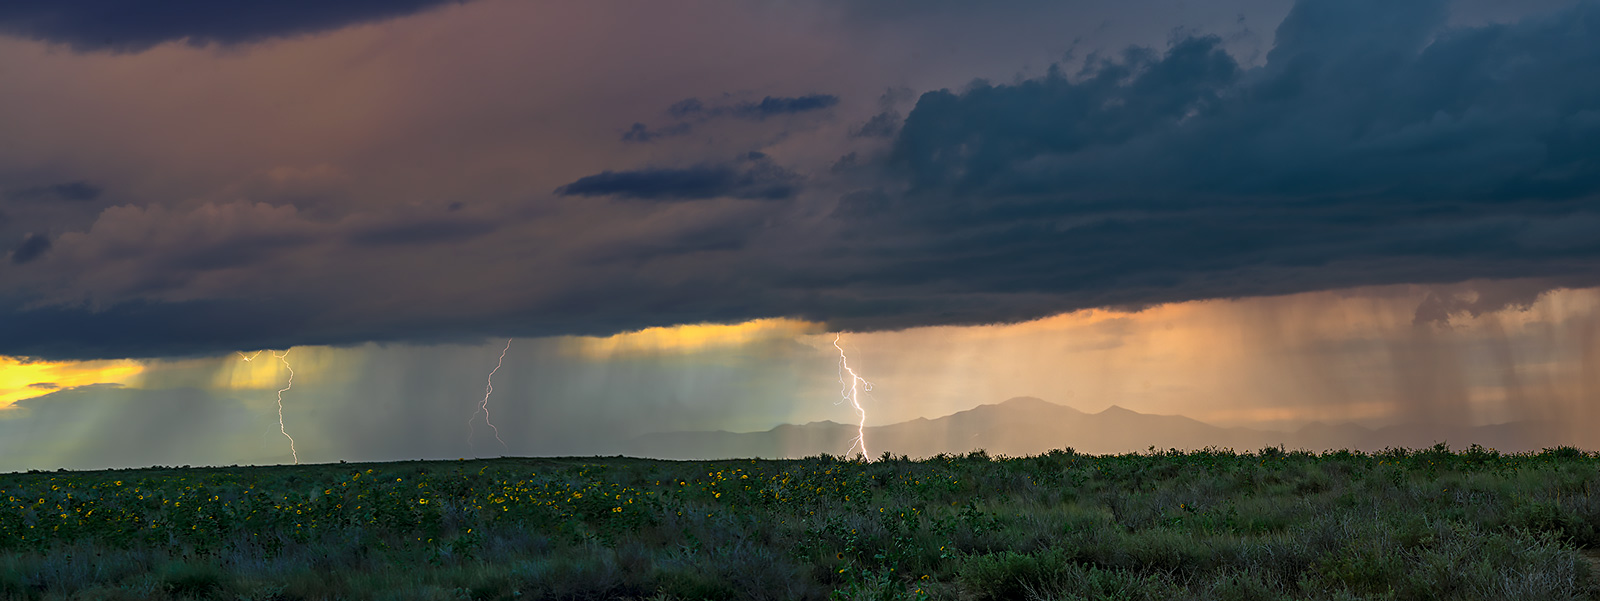 Lighting from storm at sunset south of Pikes Peak,